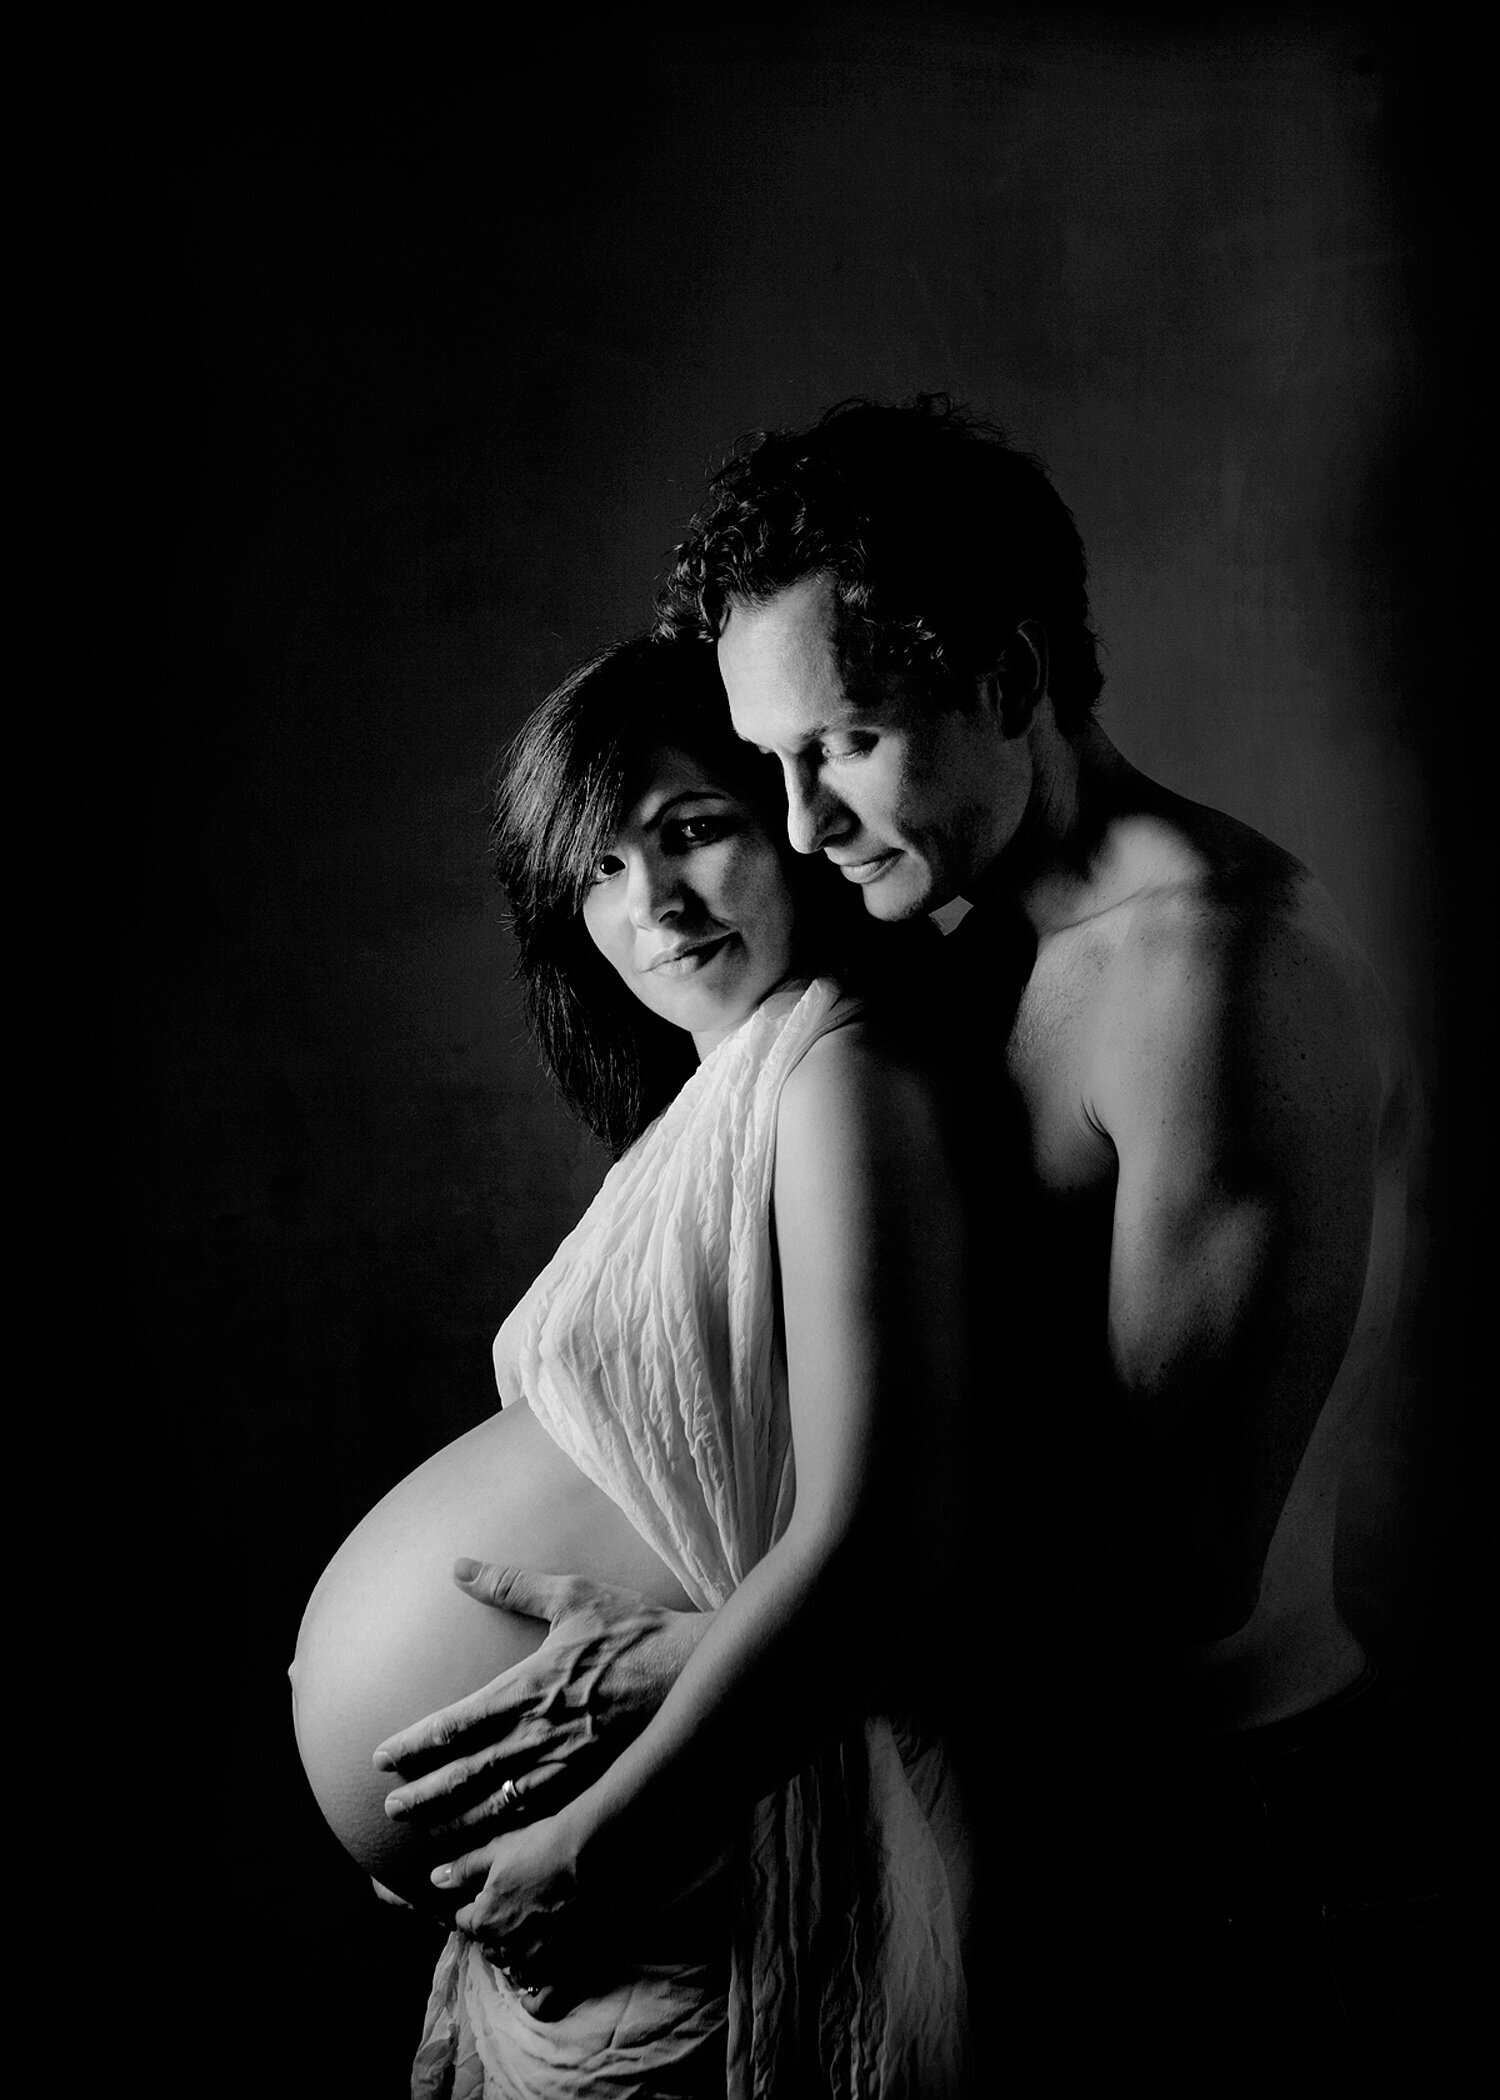 brooklyn_maternity_photographer_20_023_WEB